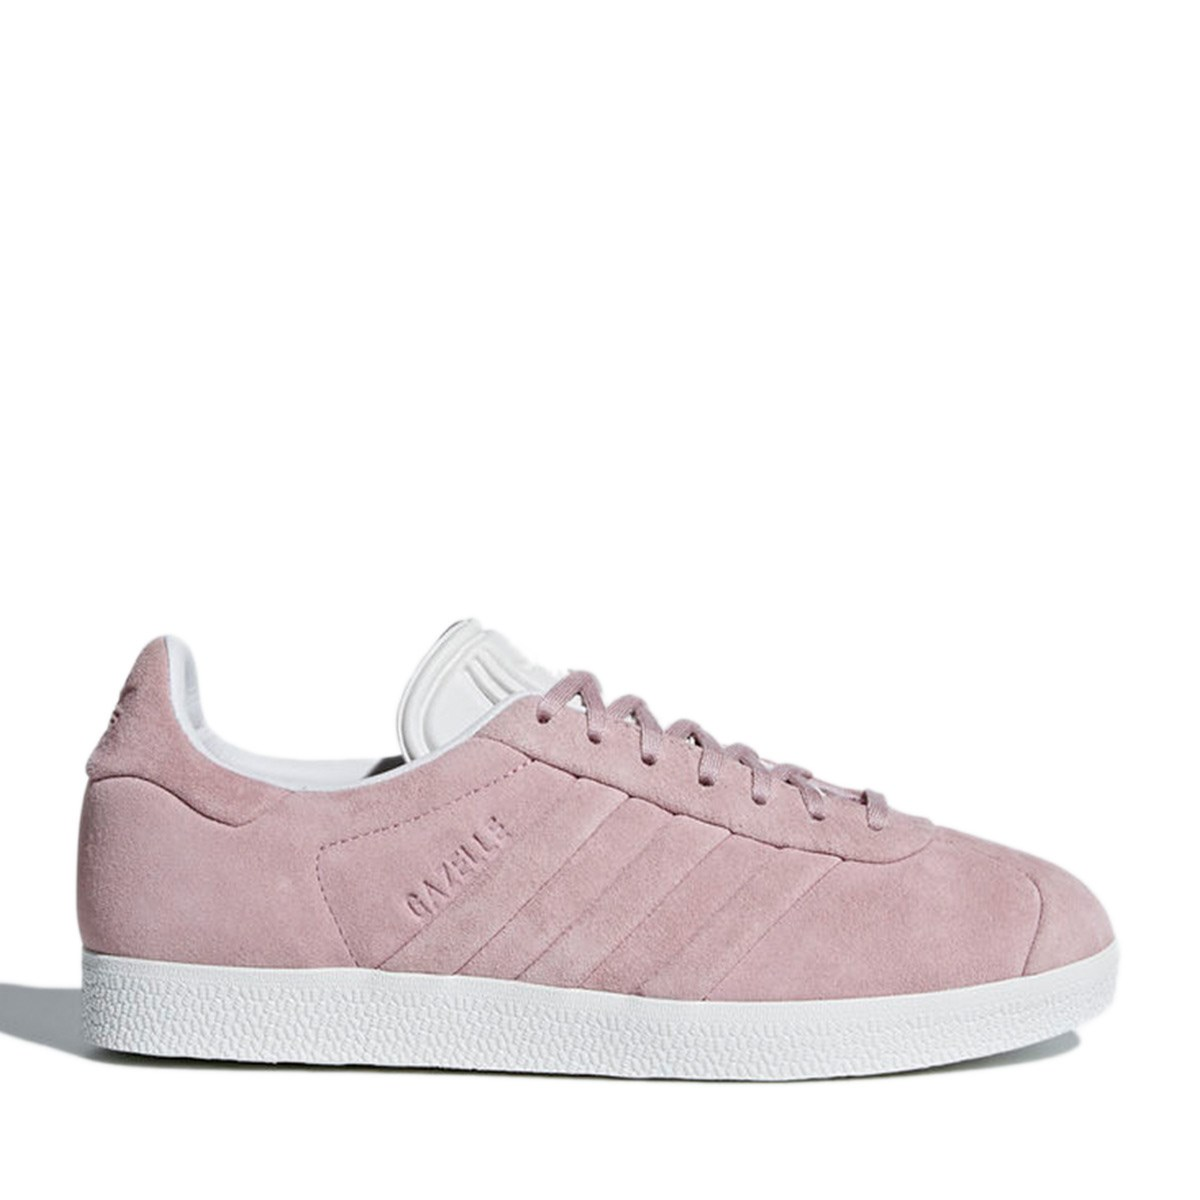 0dc040c5e8948d Women s Gazelle Stitch And Turn Pink Sneaker. Previous. default view ...